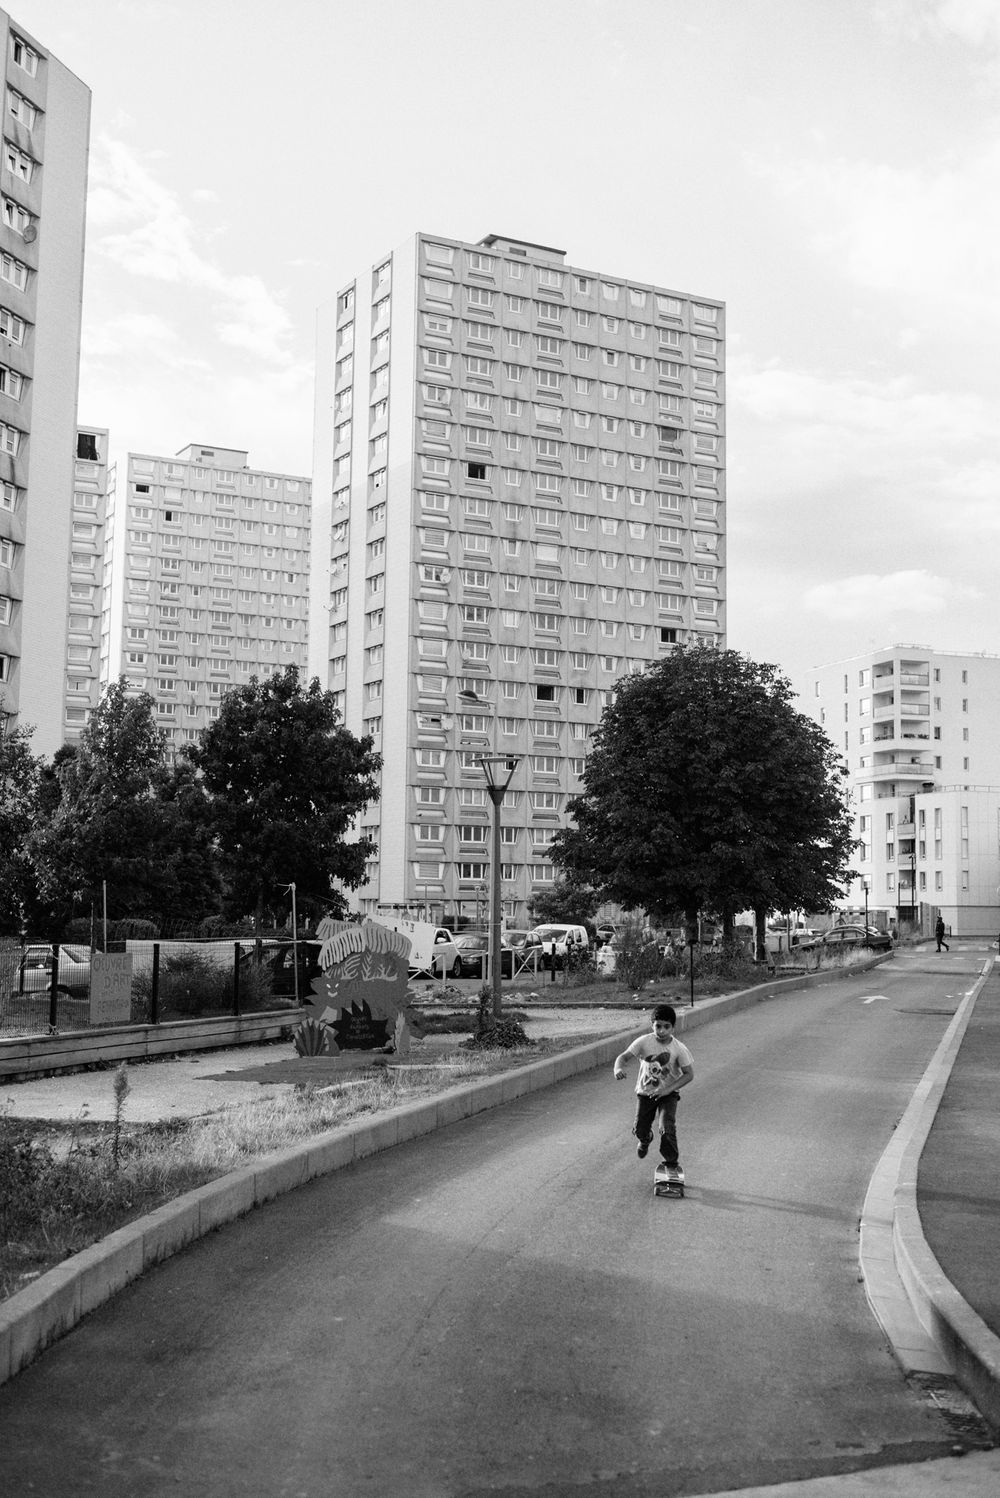 mv160926_banlieue_nike_deparis_537